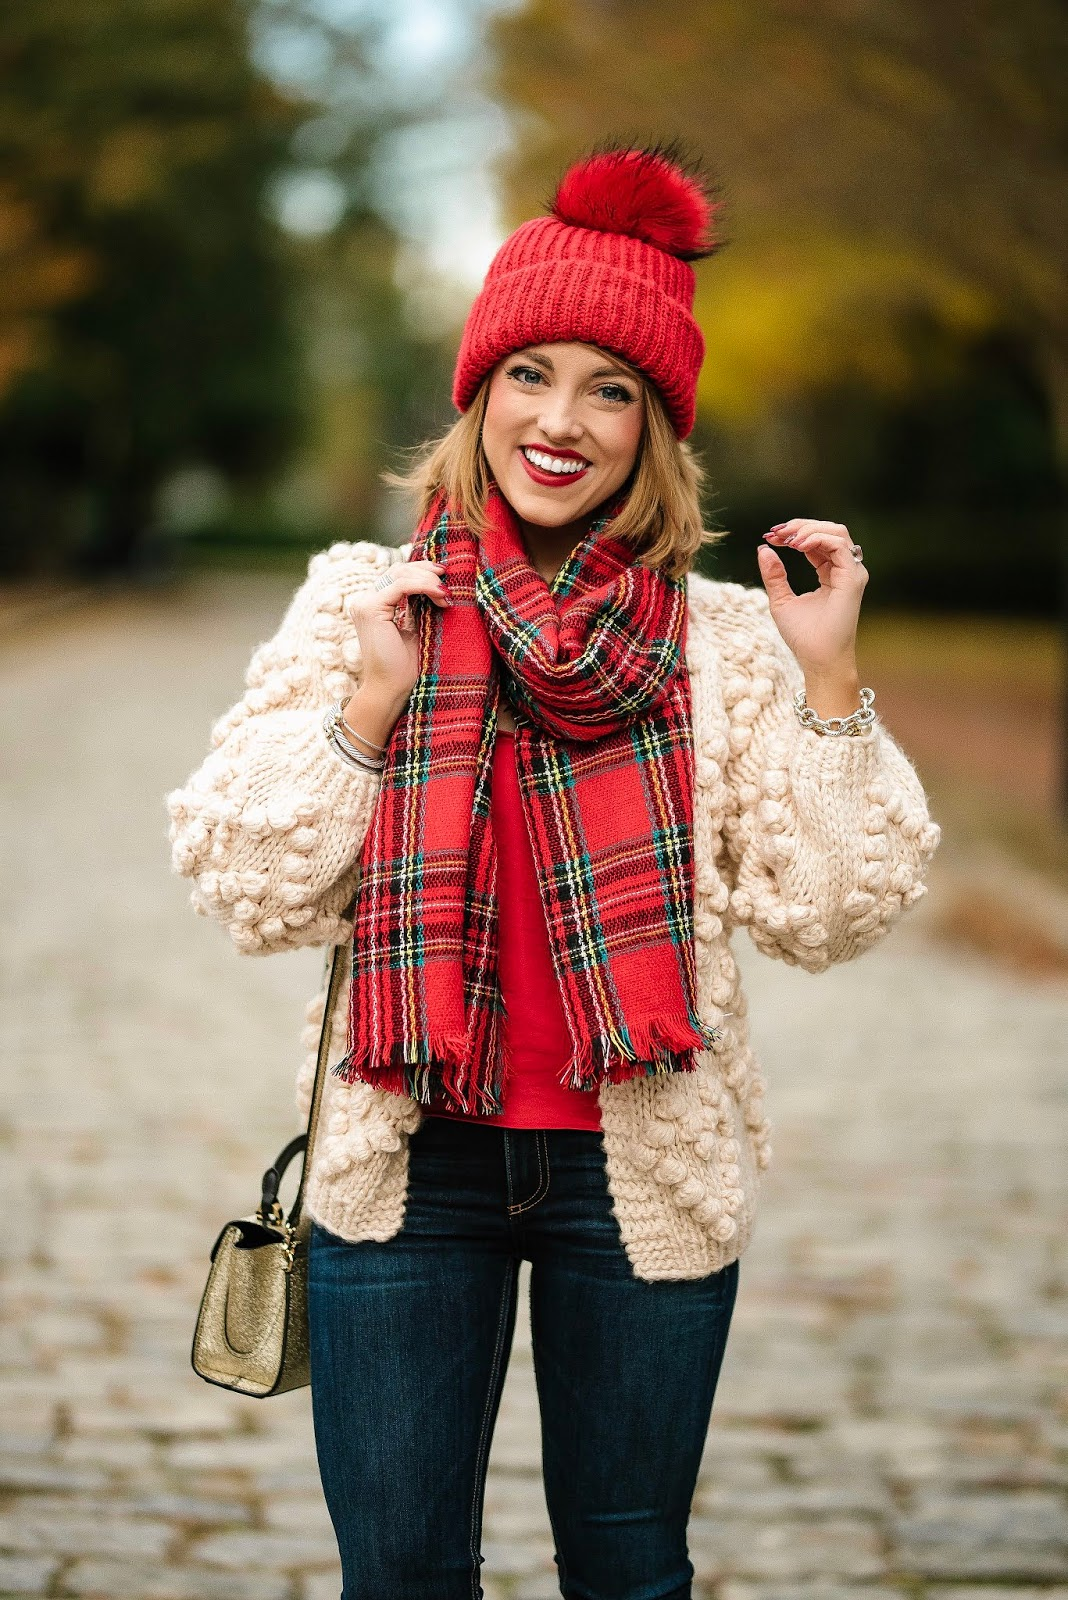 Pom Pom Heart Cardigan & Plaid Scarf - Something Delightful Blog